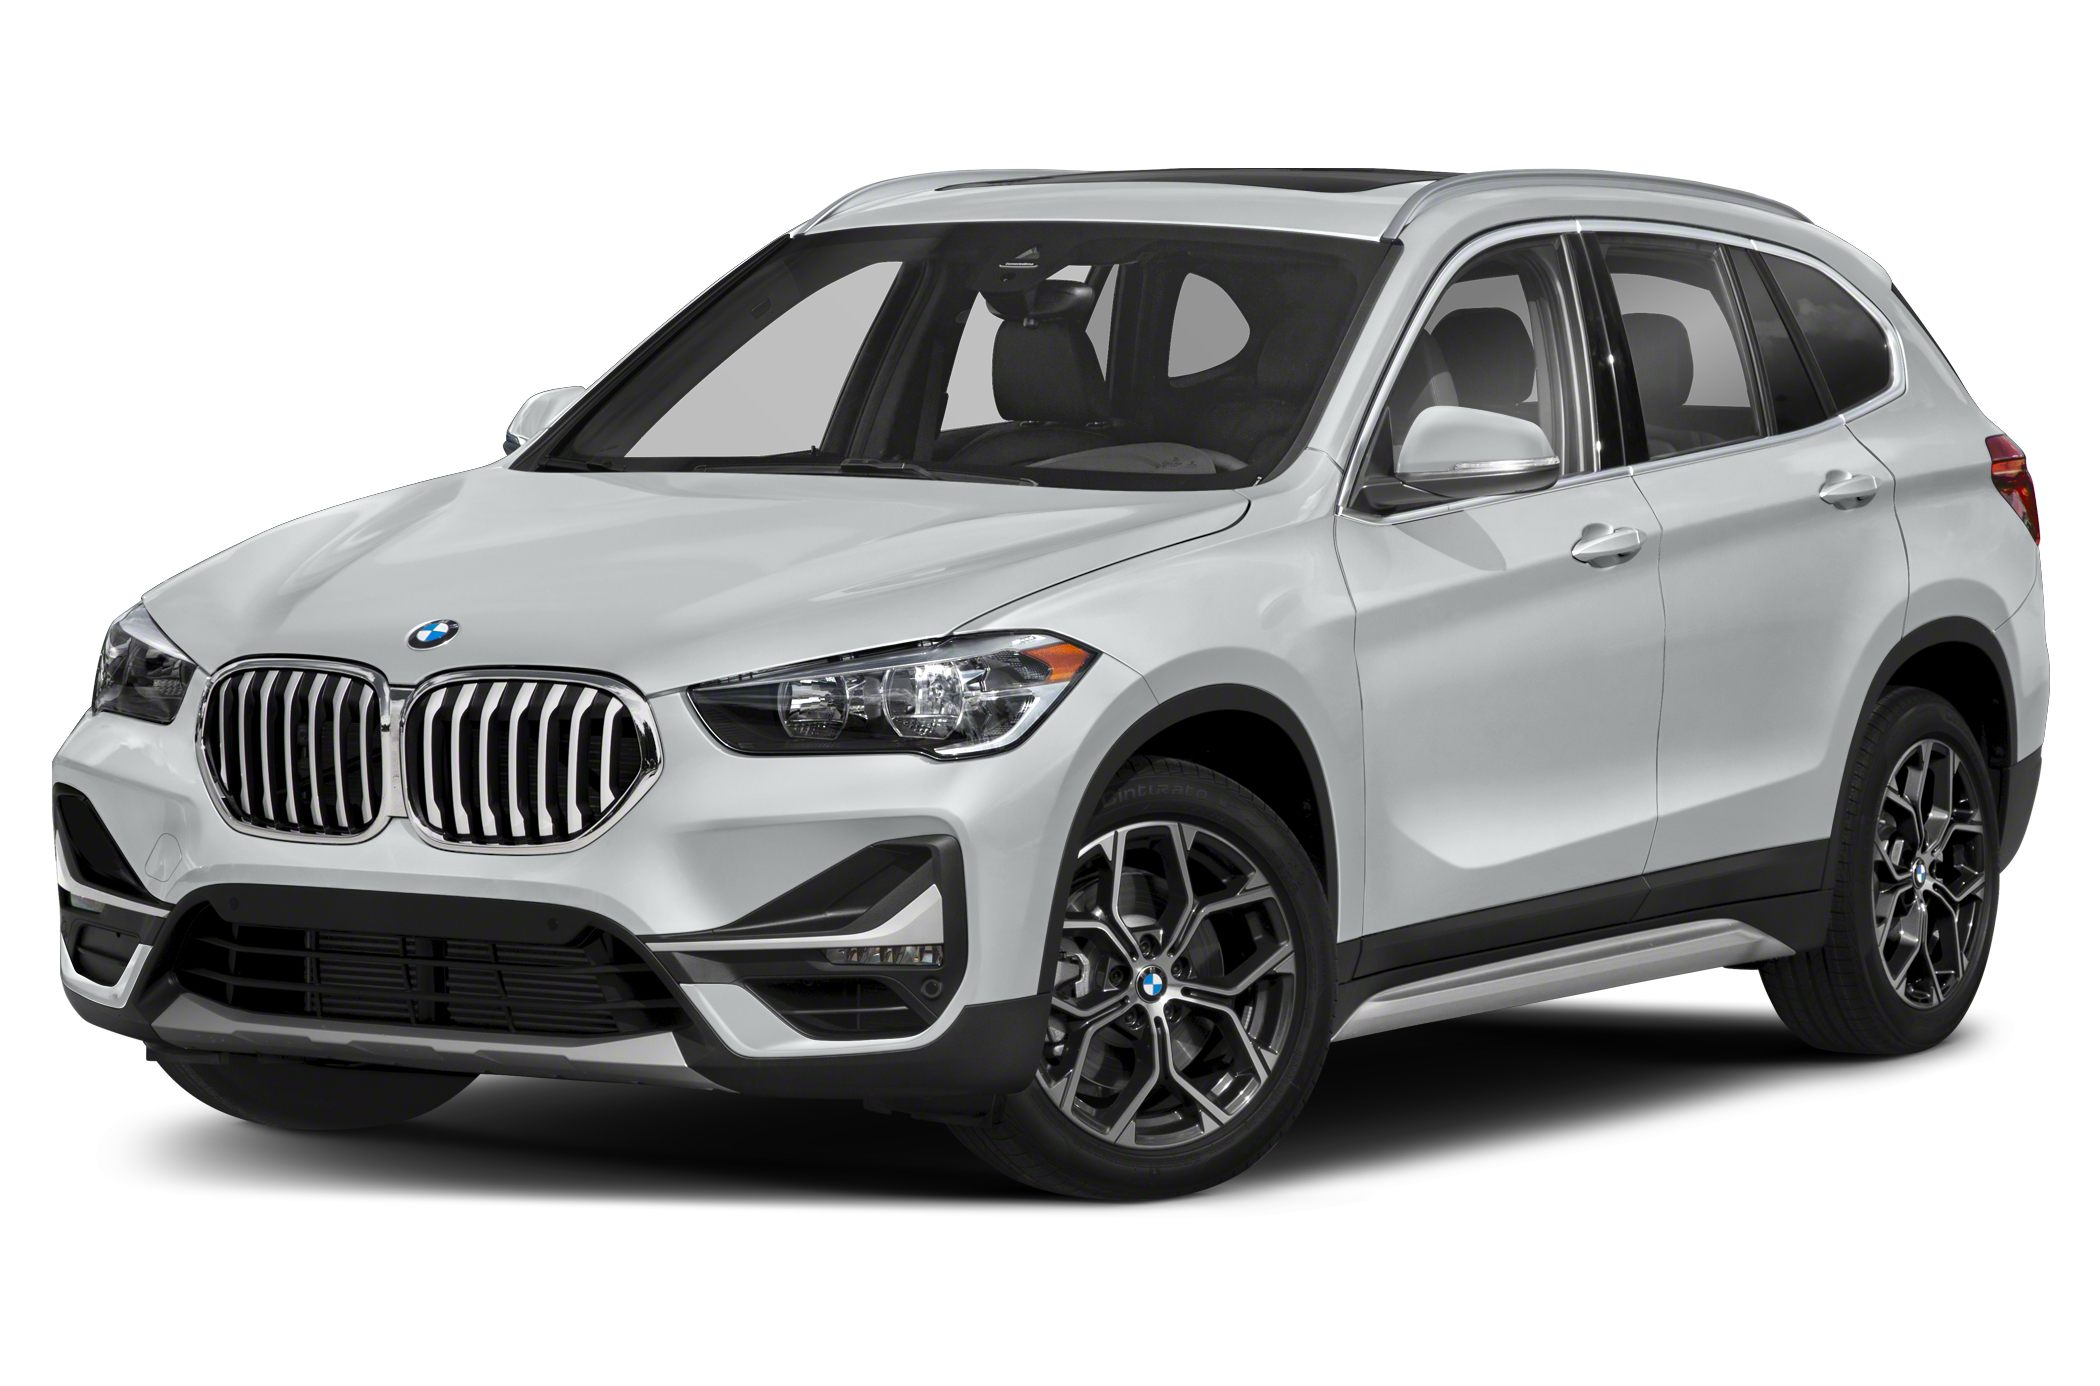 2020 Jeep Grand Cherokee Deals, Prices, Incentives ...